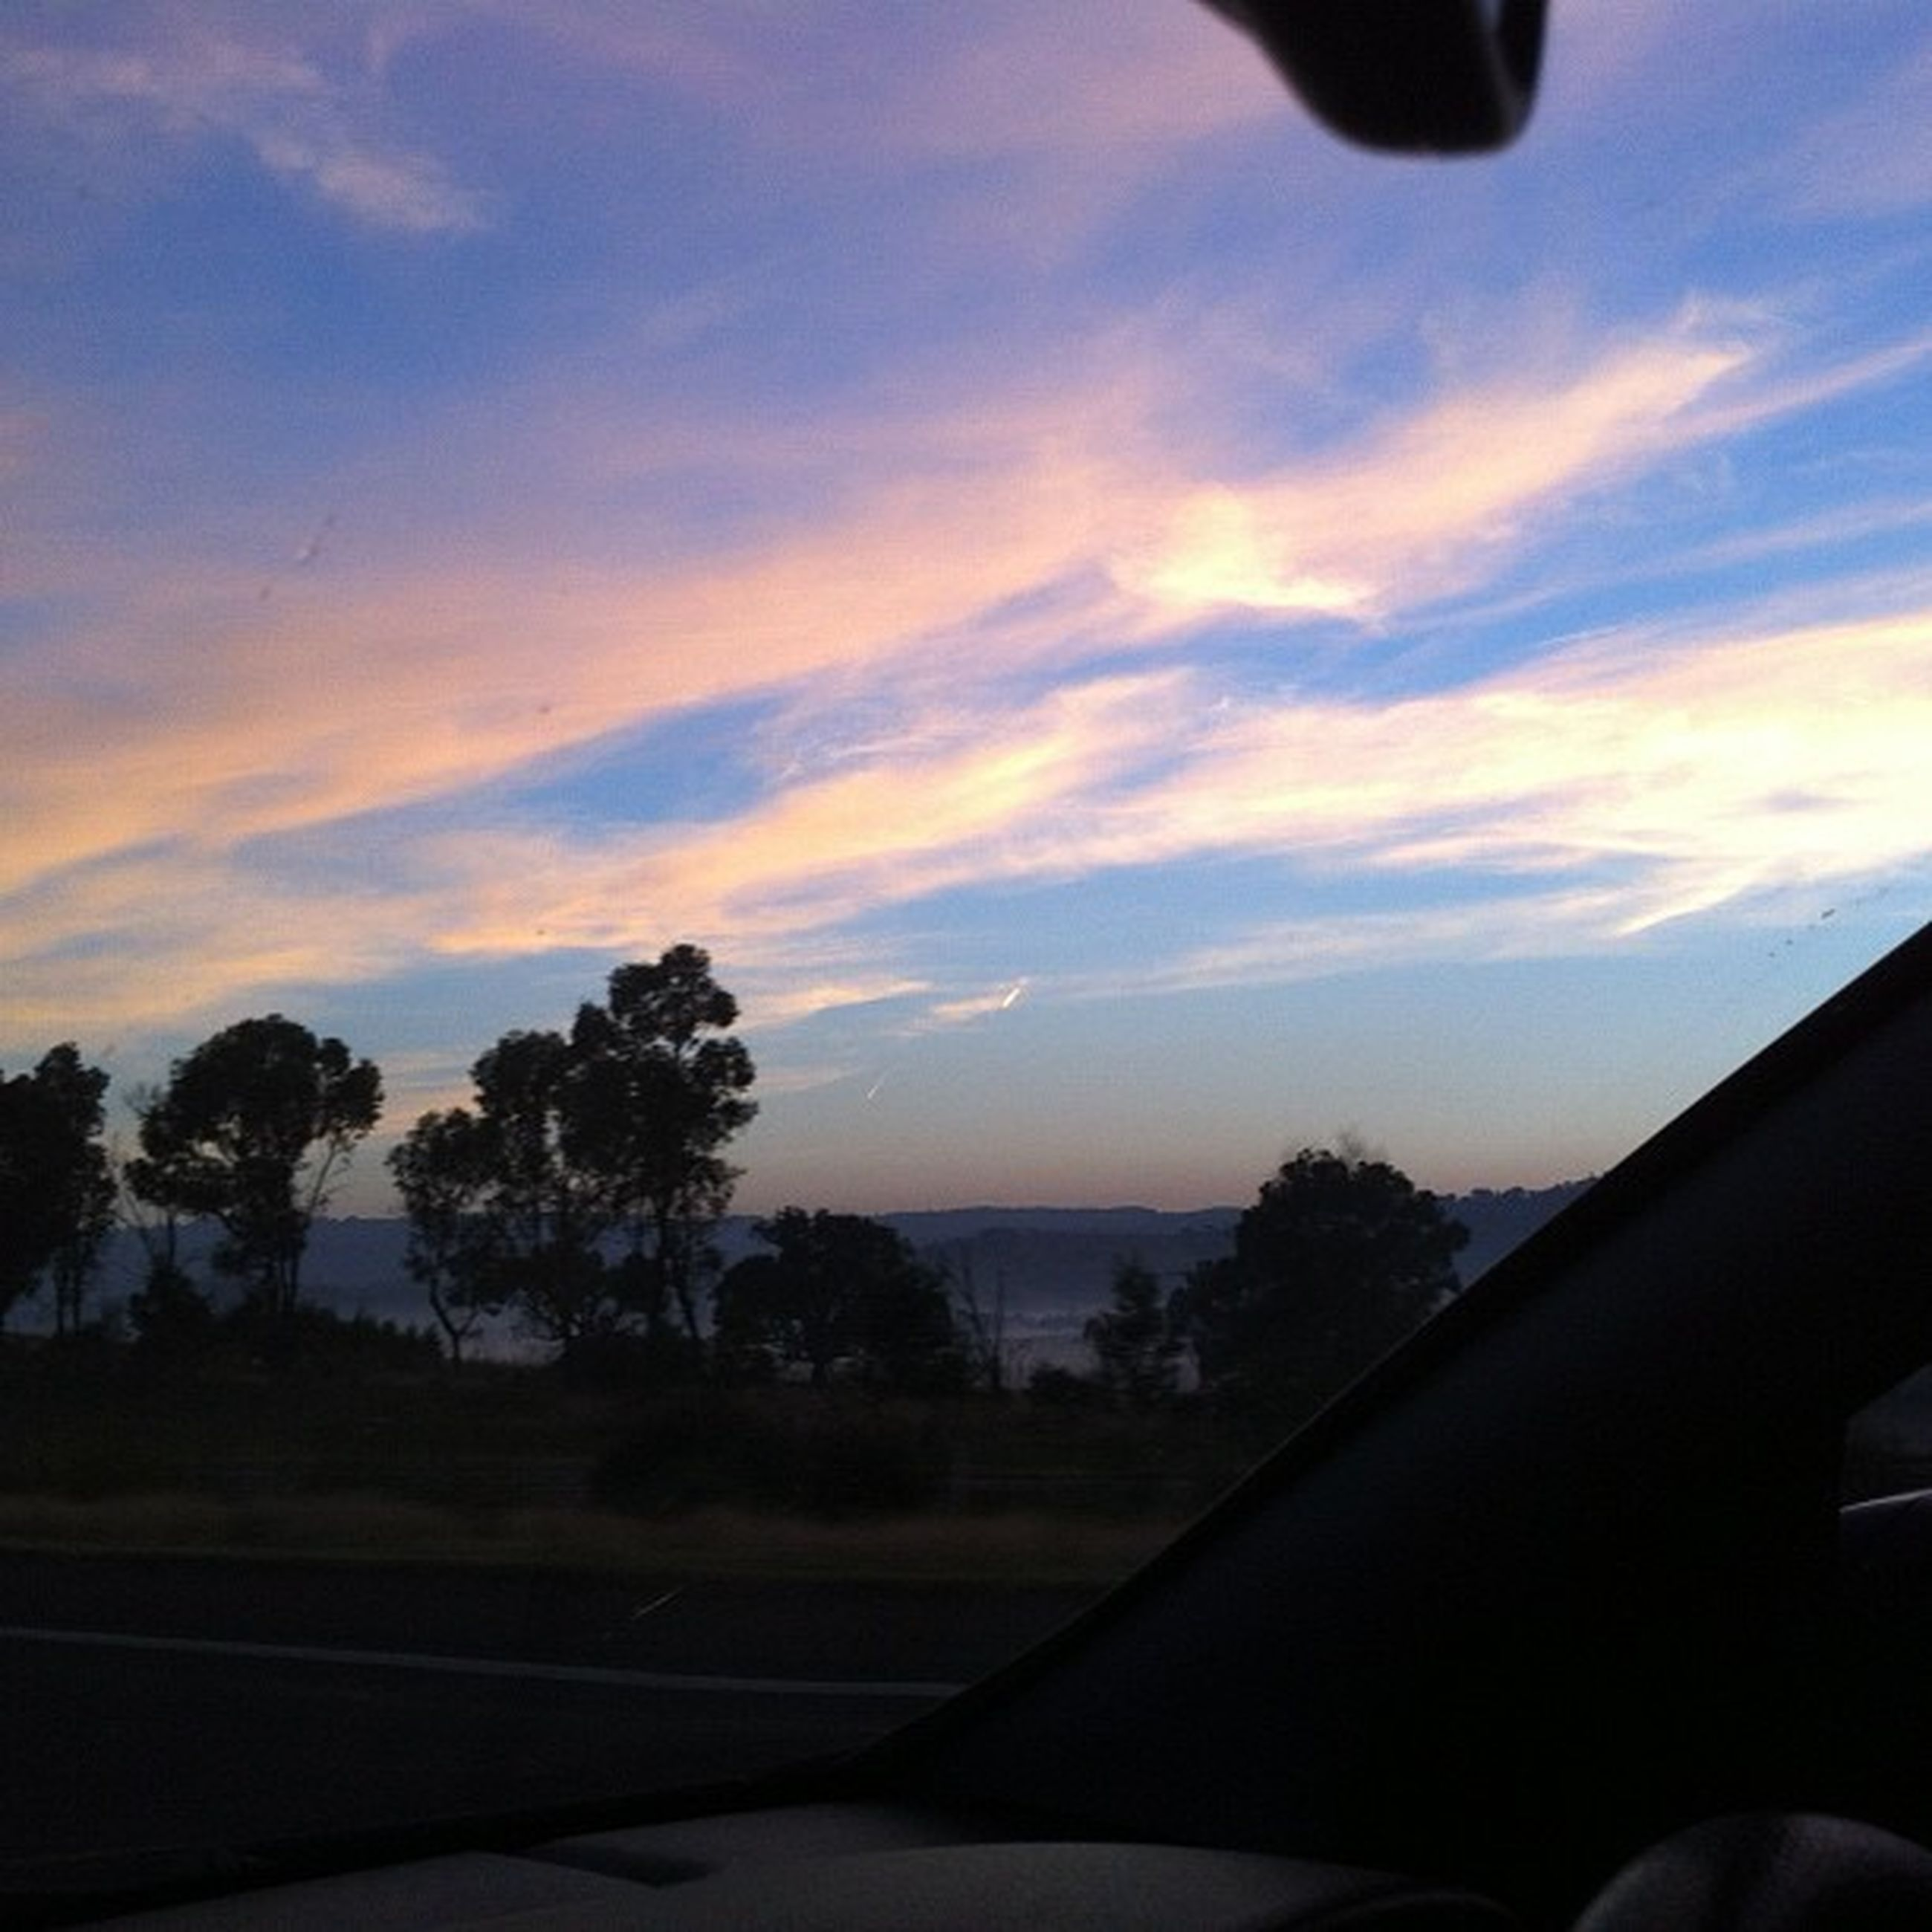 transportation, sky, sunset, cloud - sky, tree, mode of transport, silhouette, scenics, beauty in nature, road, cloud, vehicle interior, part of, landscape, nature, tranquil scene, tranquility, cropped, airplane, car